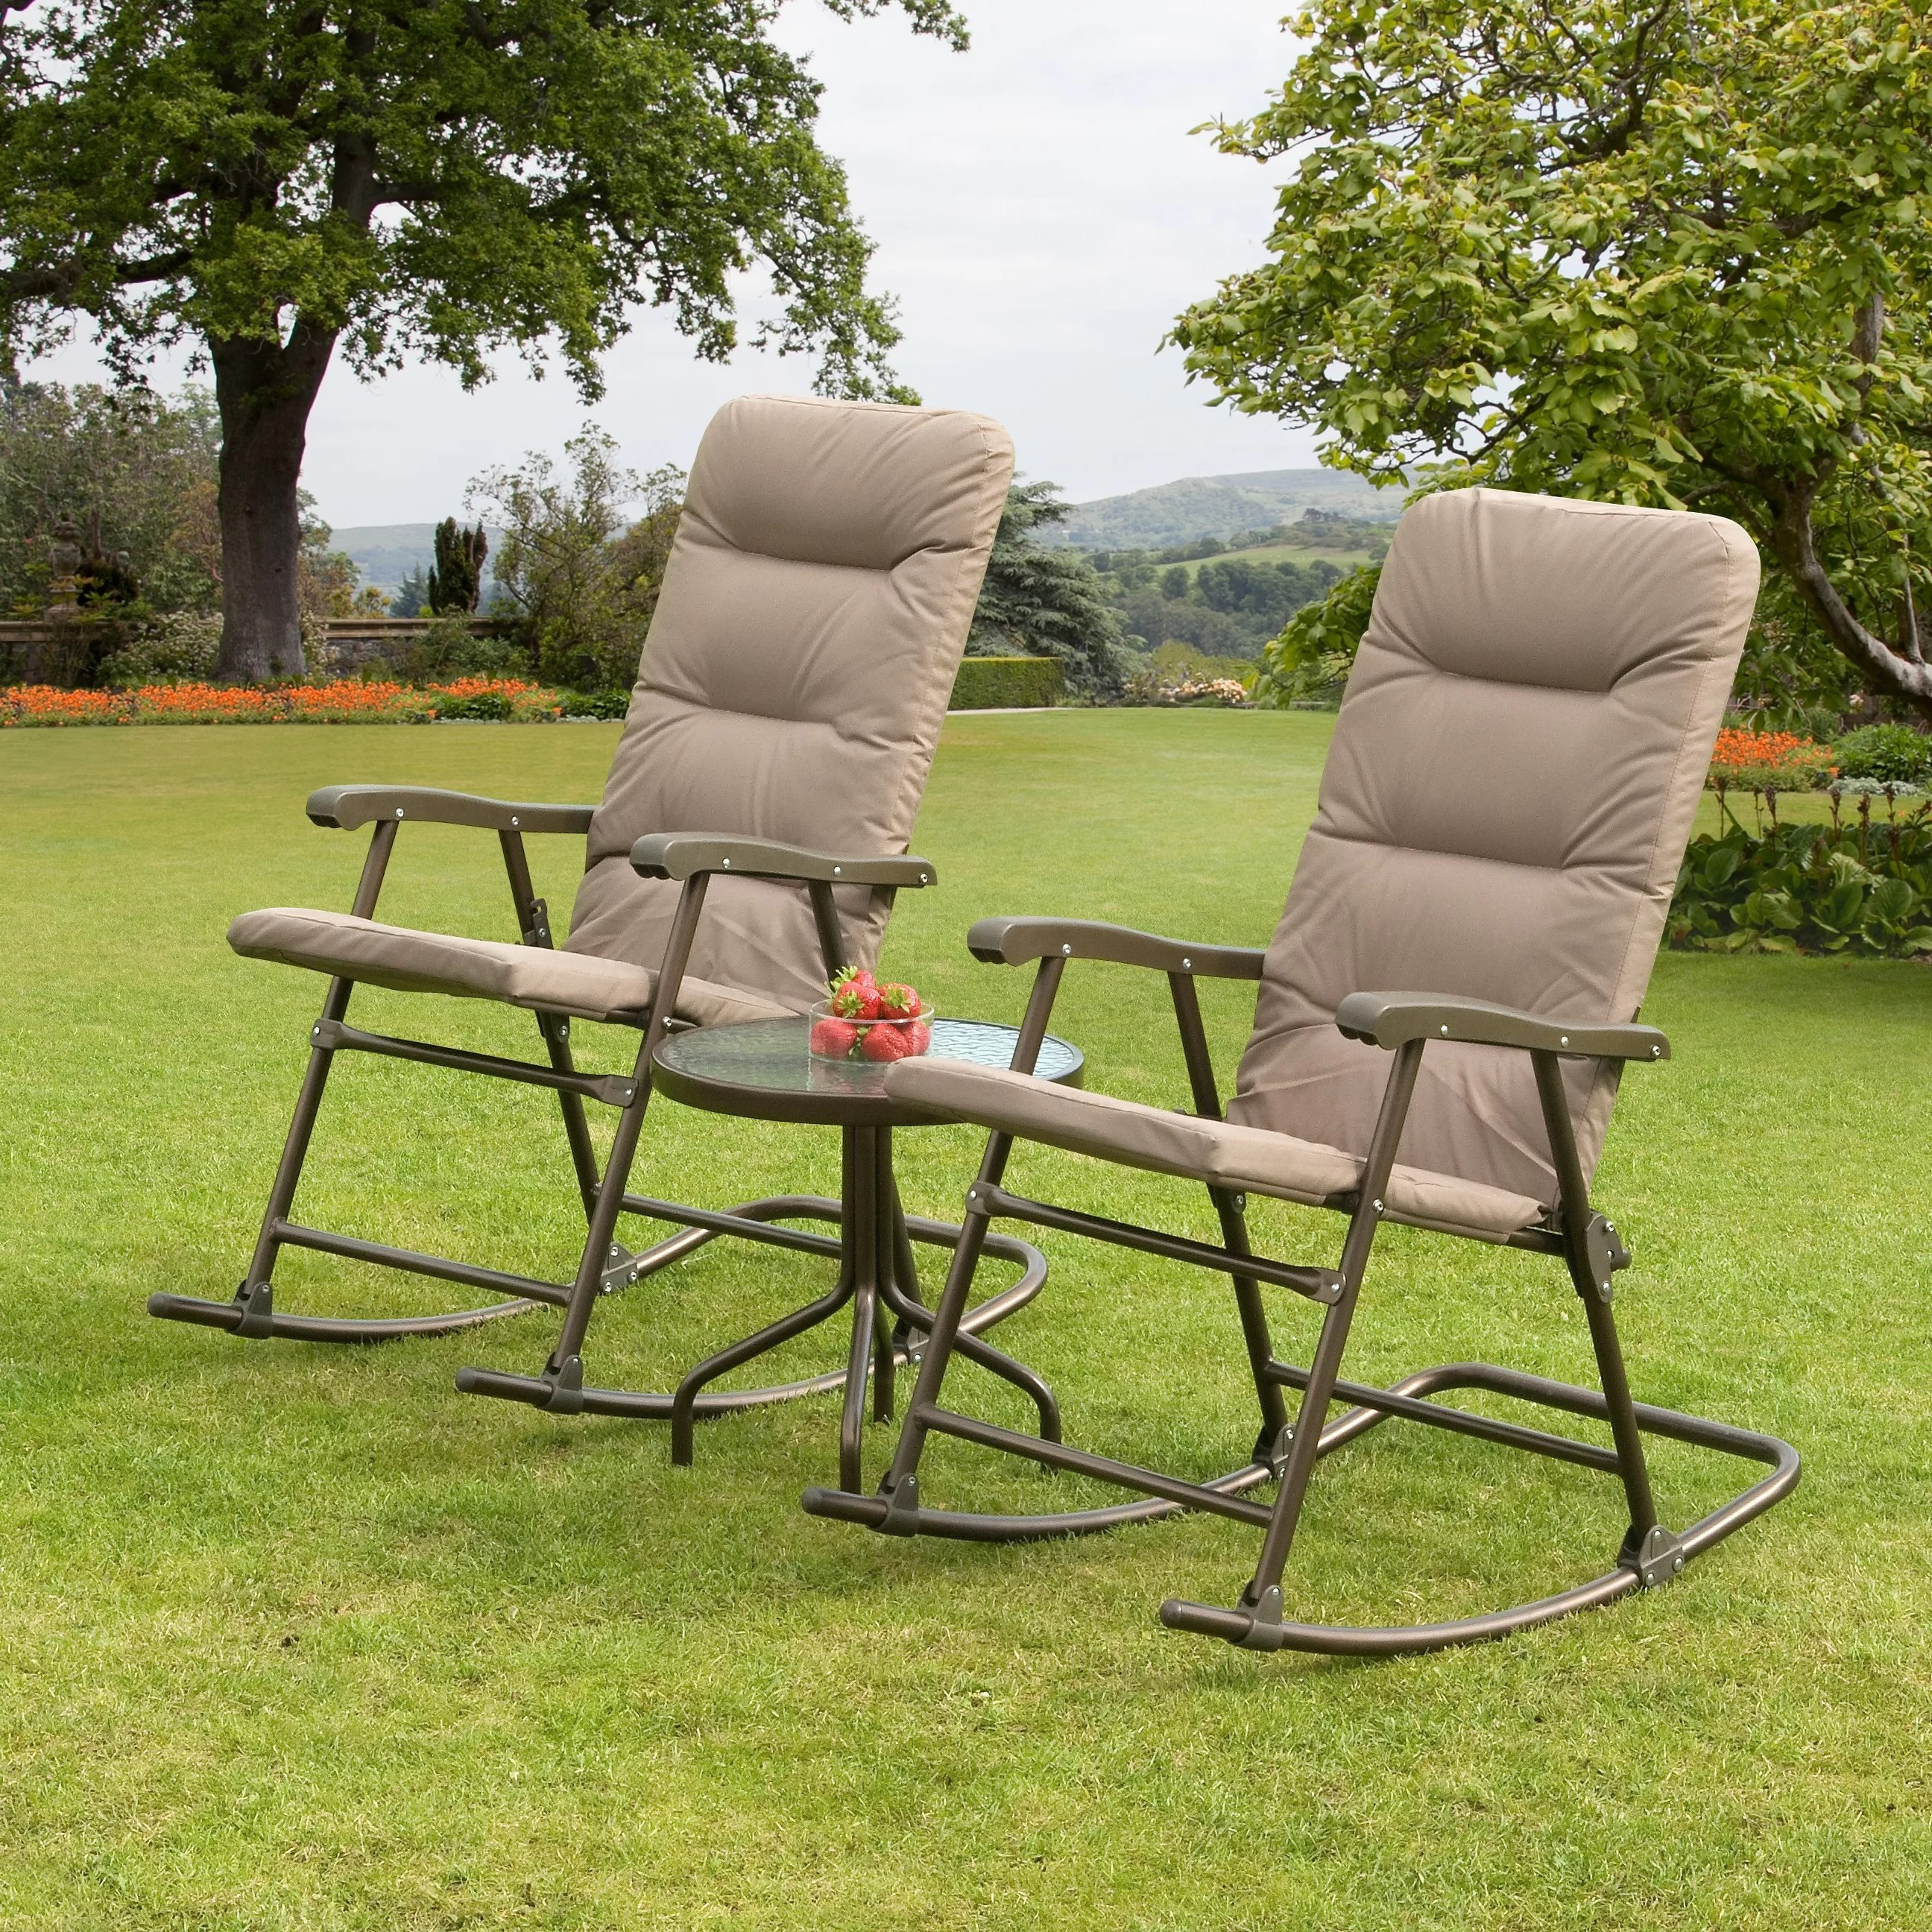 SunTime Outdoor Living Hereford 3 Piece Rocker Seating ... on Suntime Outdoor Living  id=51288